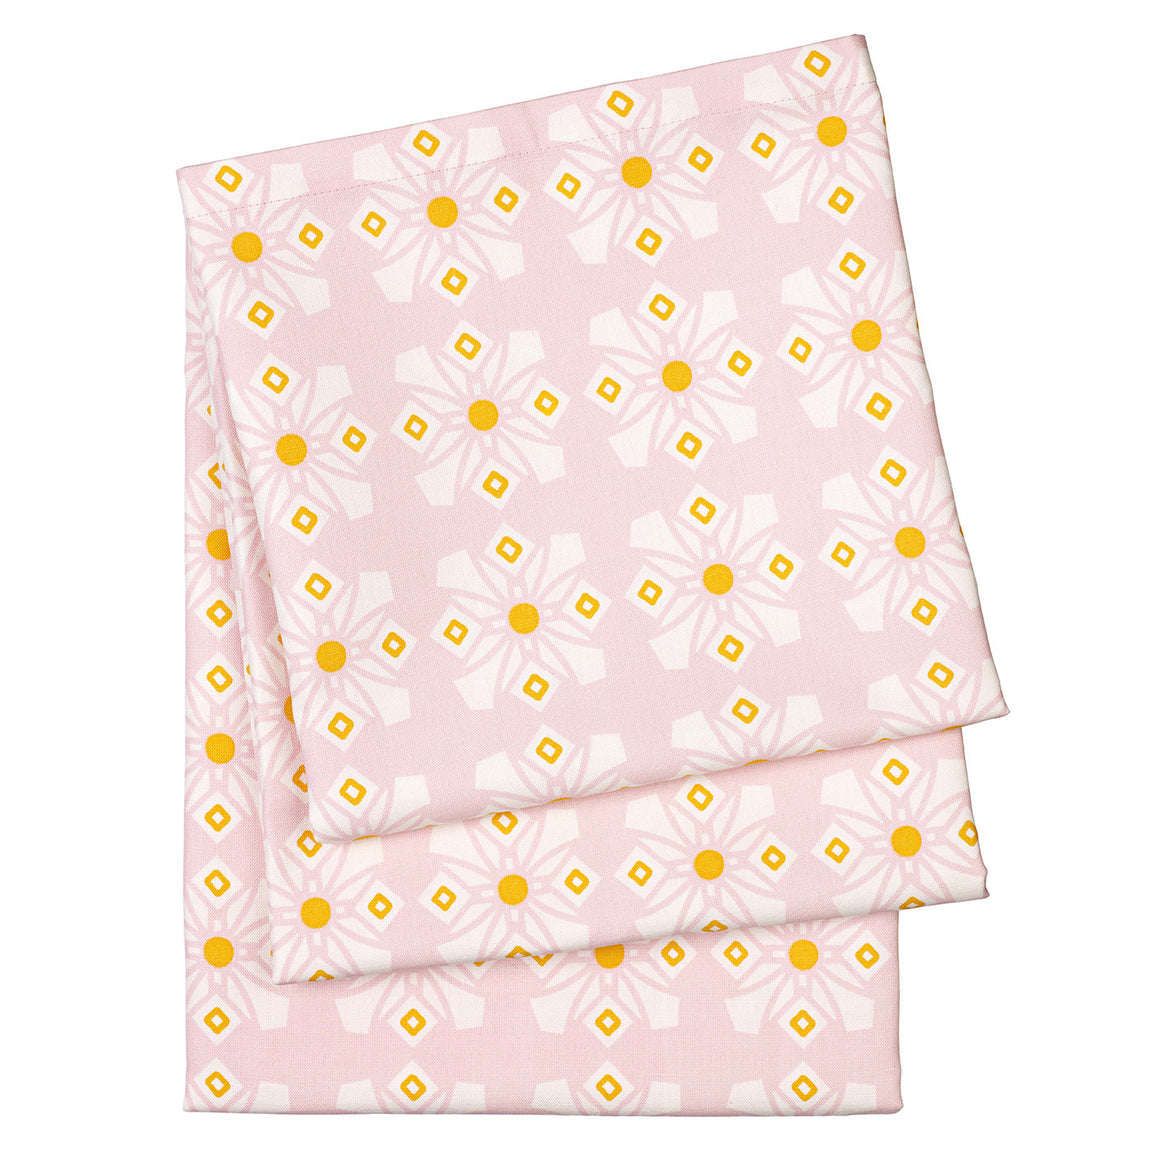 Dorothy Geometric Cotton Linen Tablecloth in Light Pink and saffron yellow ships from Canada worldwide (USA)